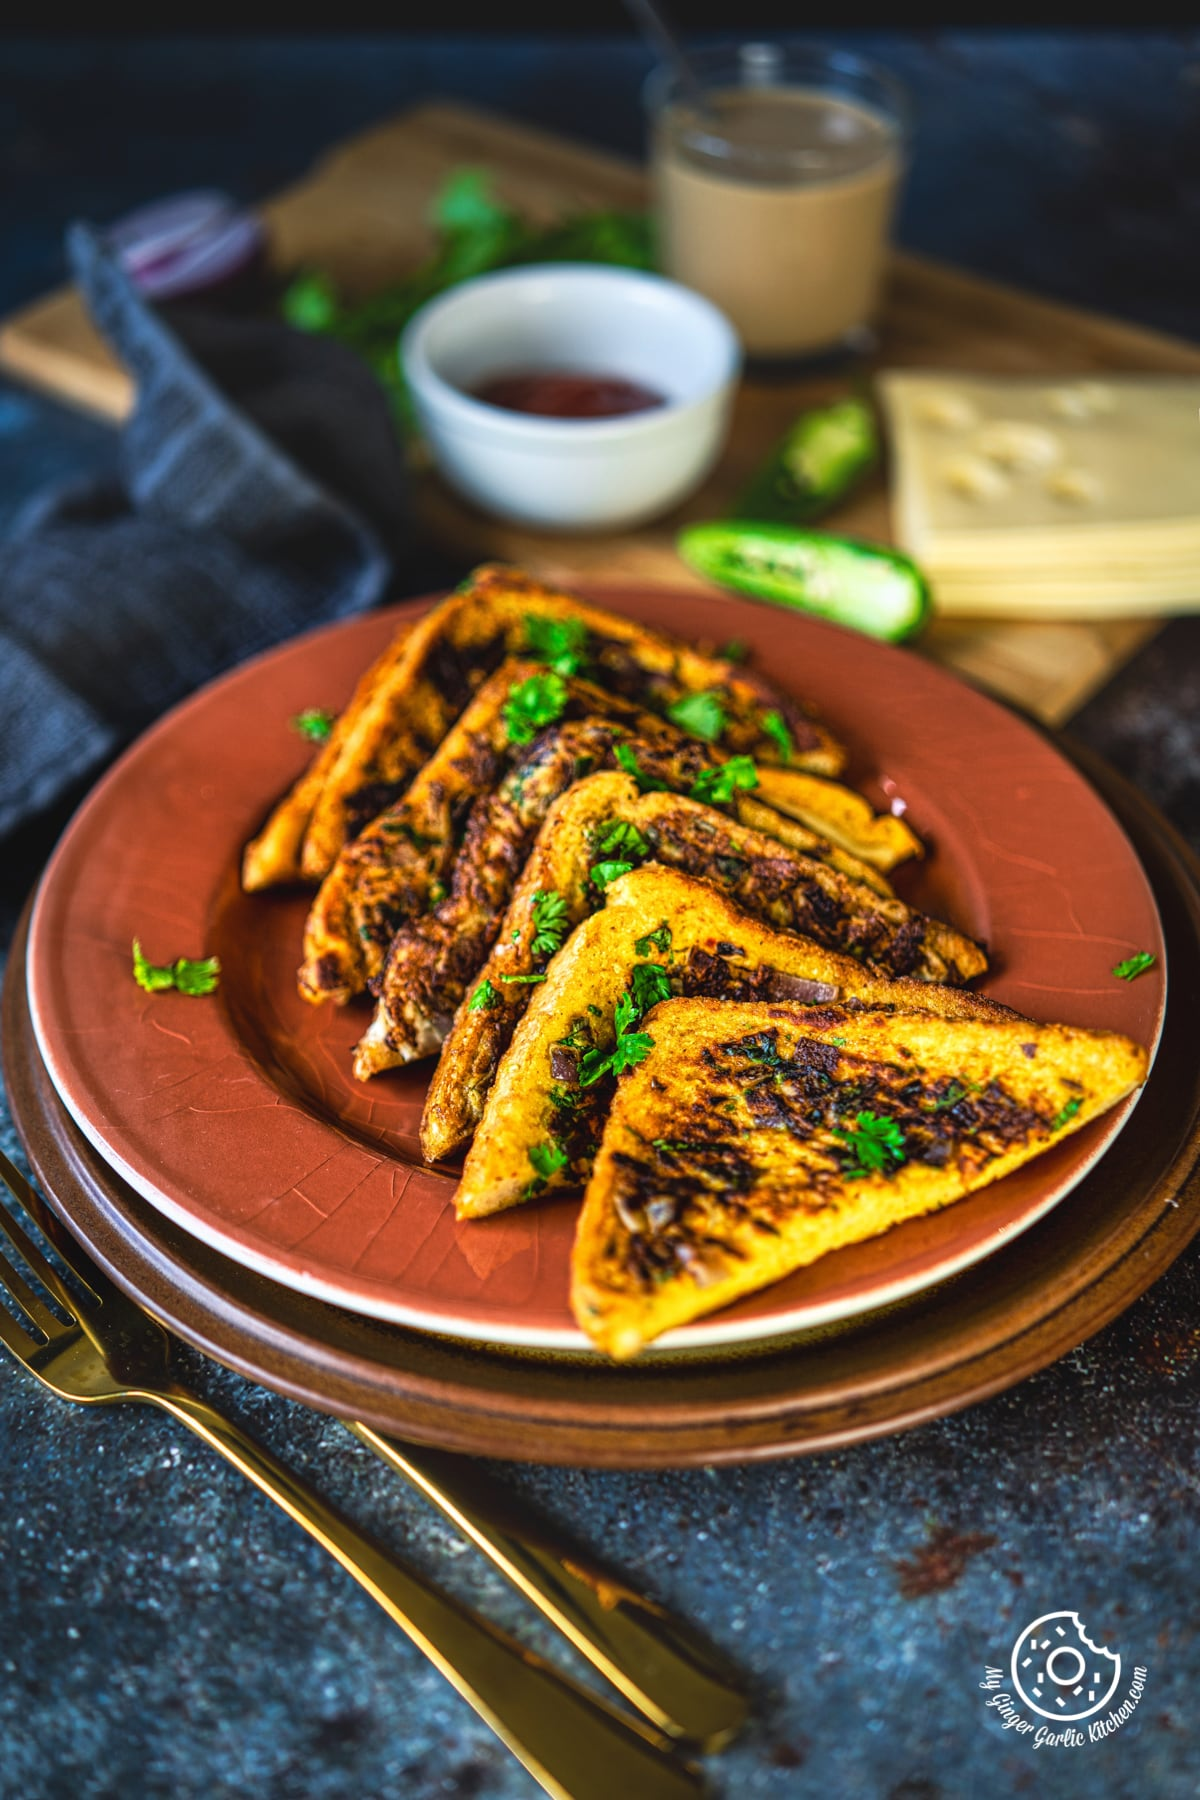 masala french toast in a brown plate